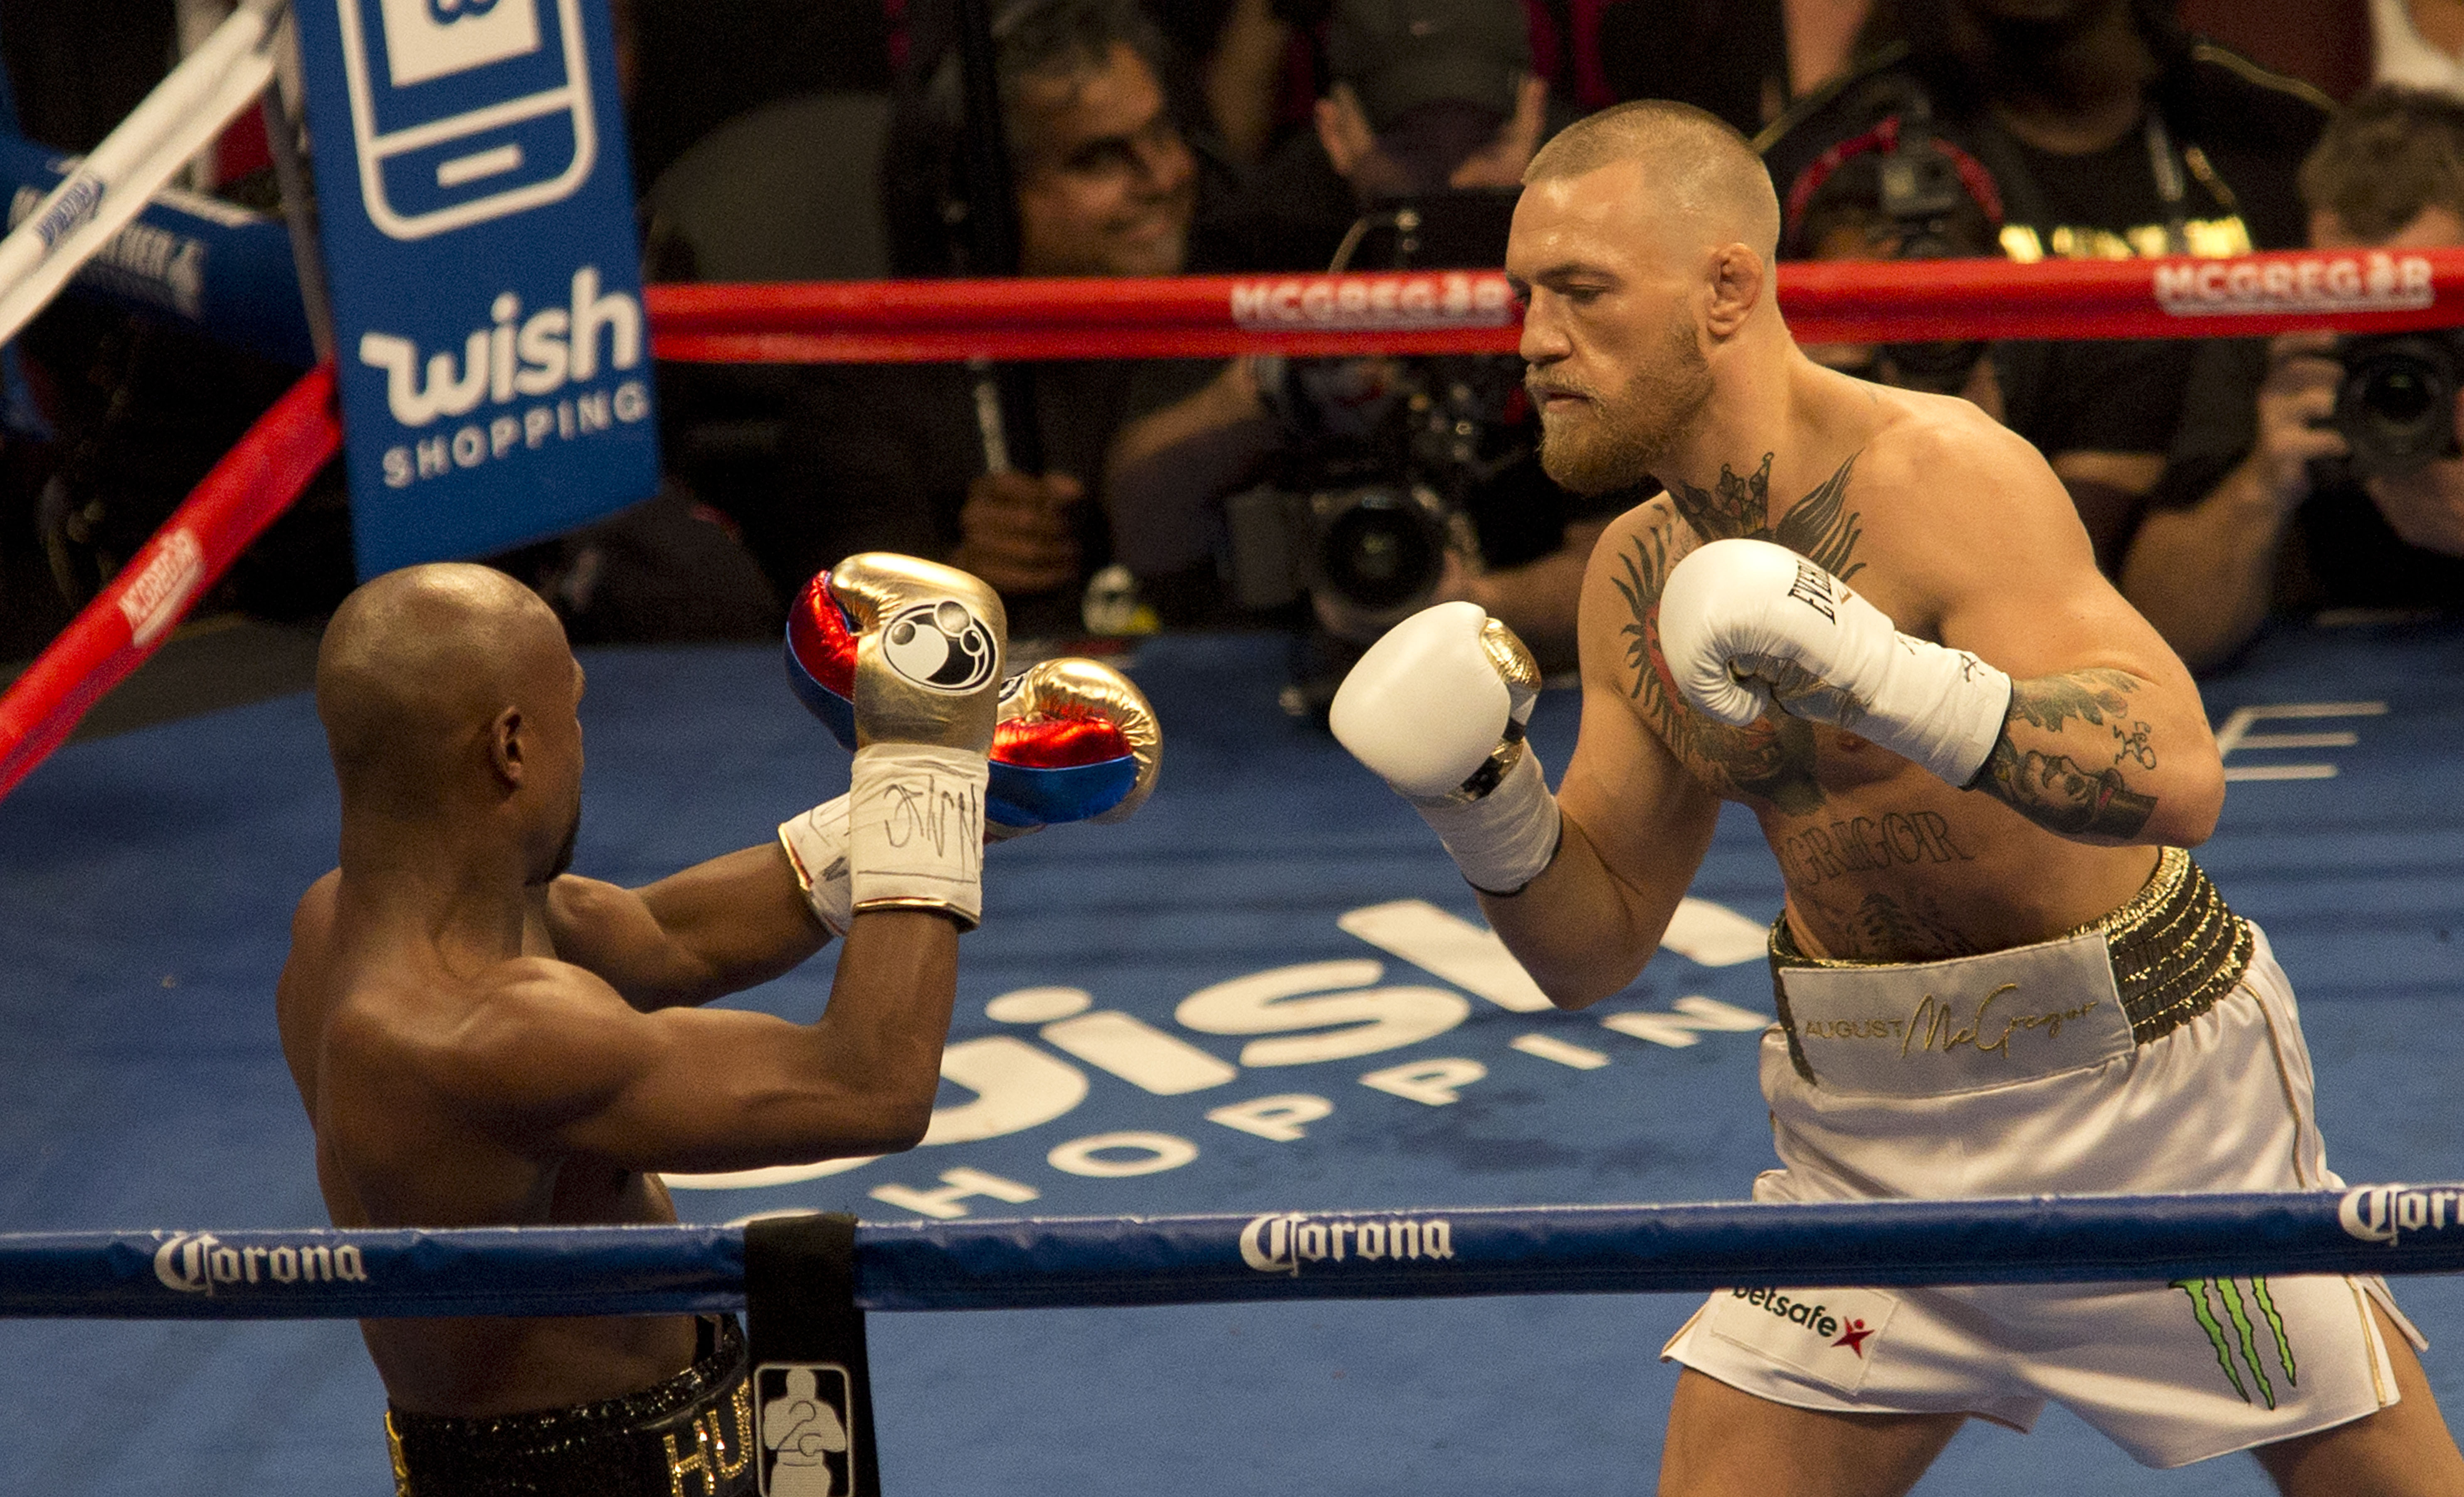 Conor McGregor in the boxing ring against Floyd Mayweather. Credit: PA